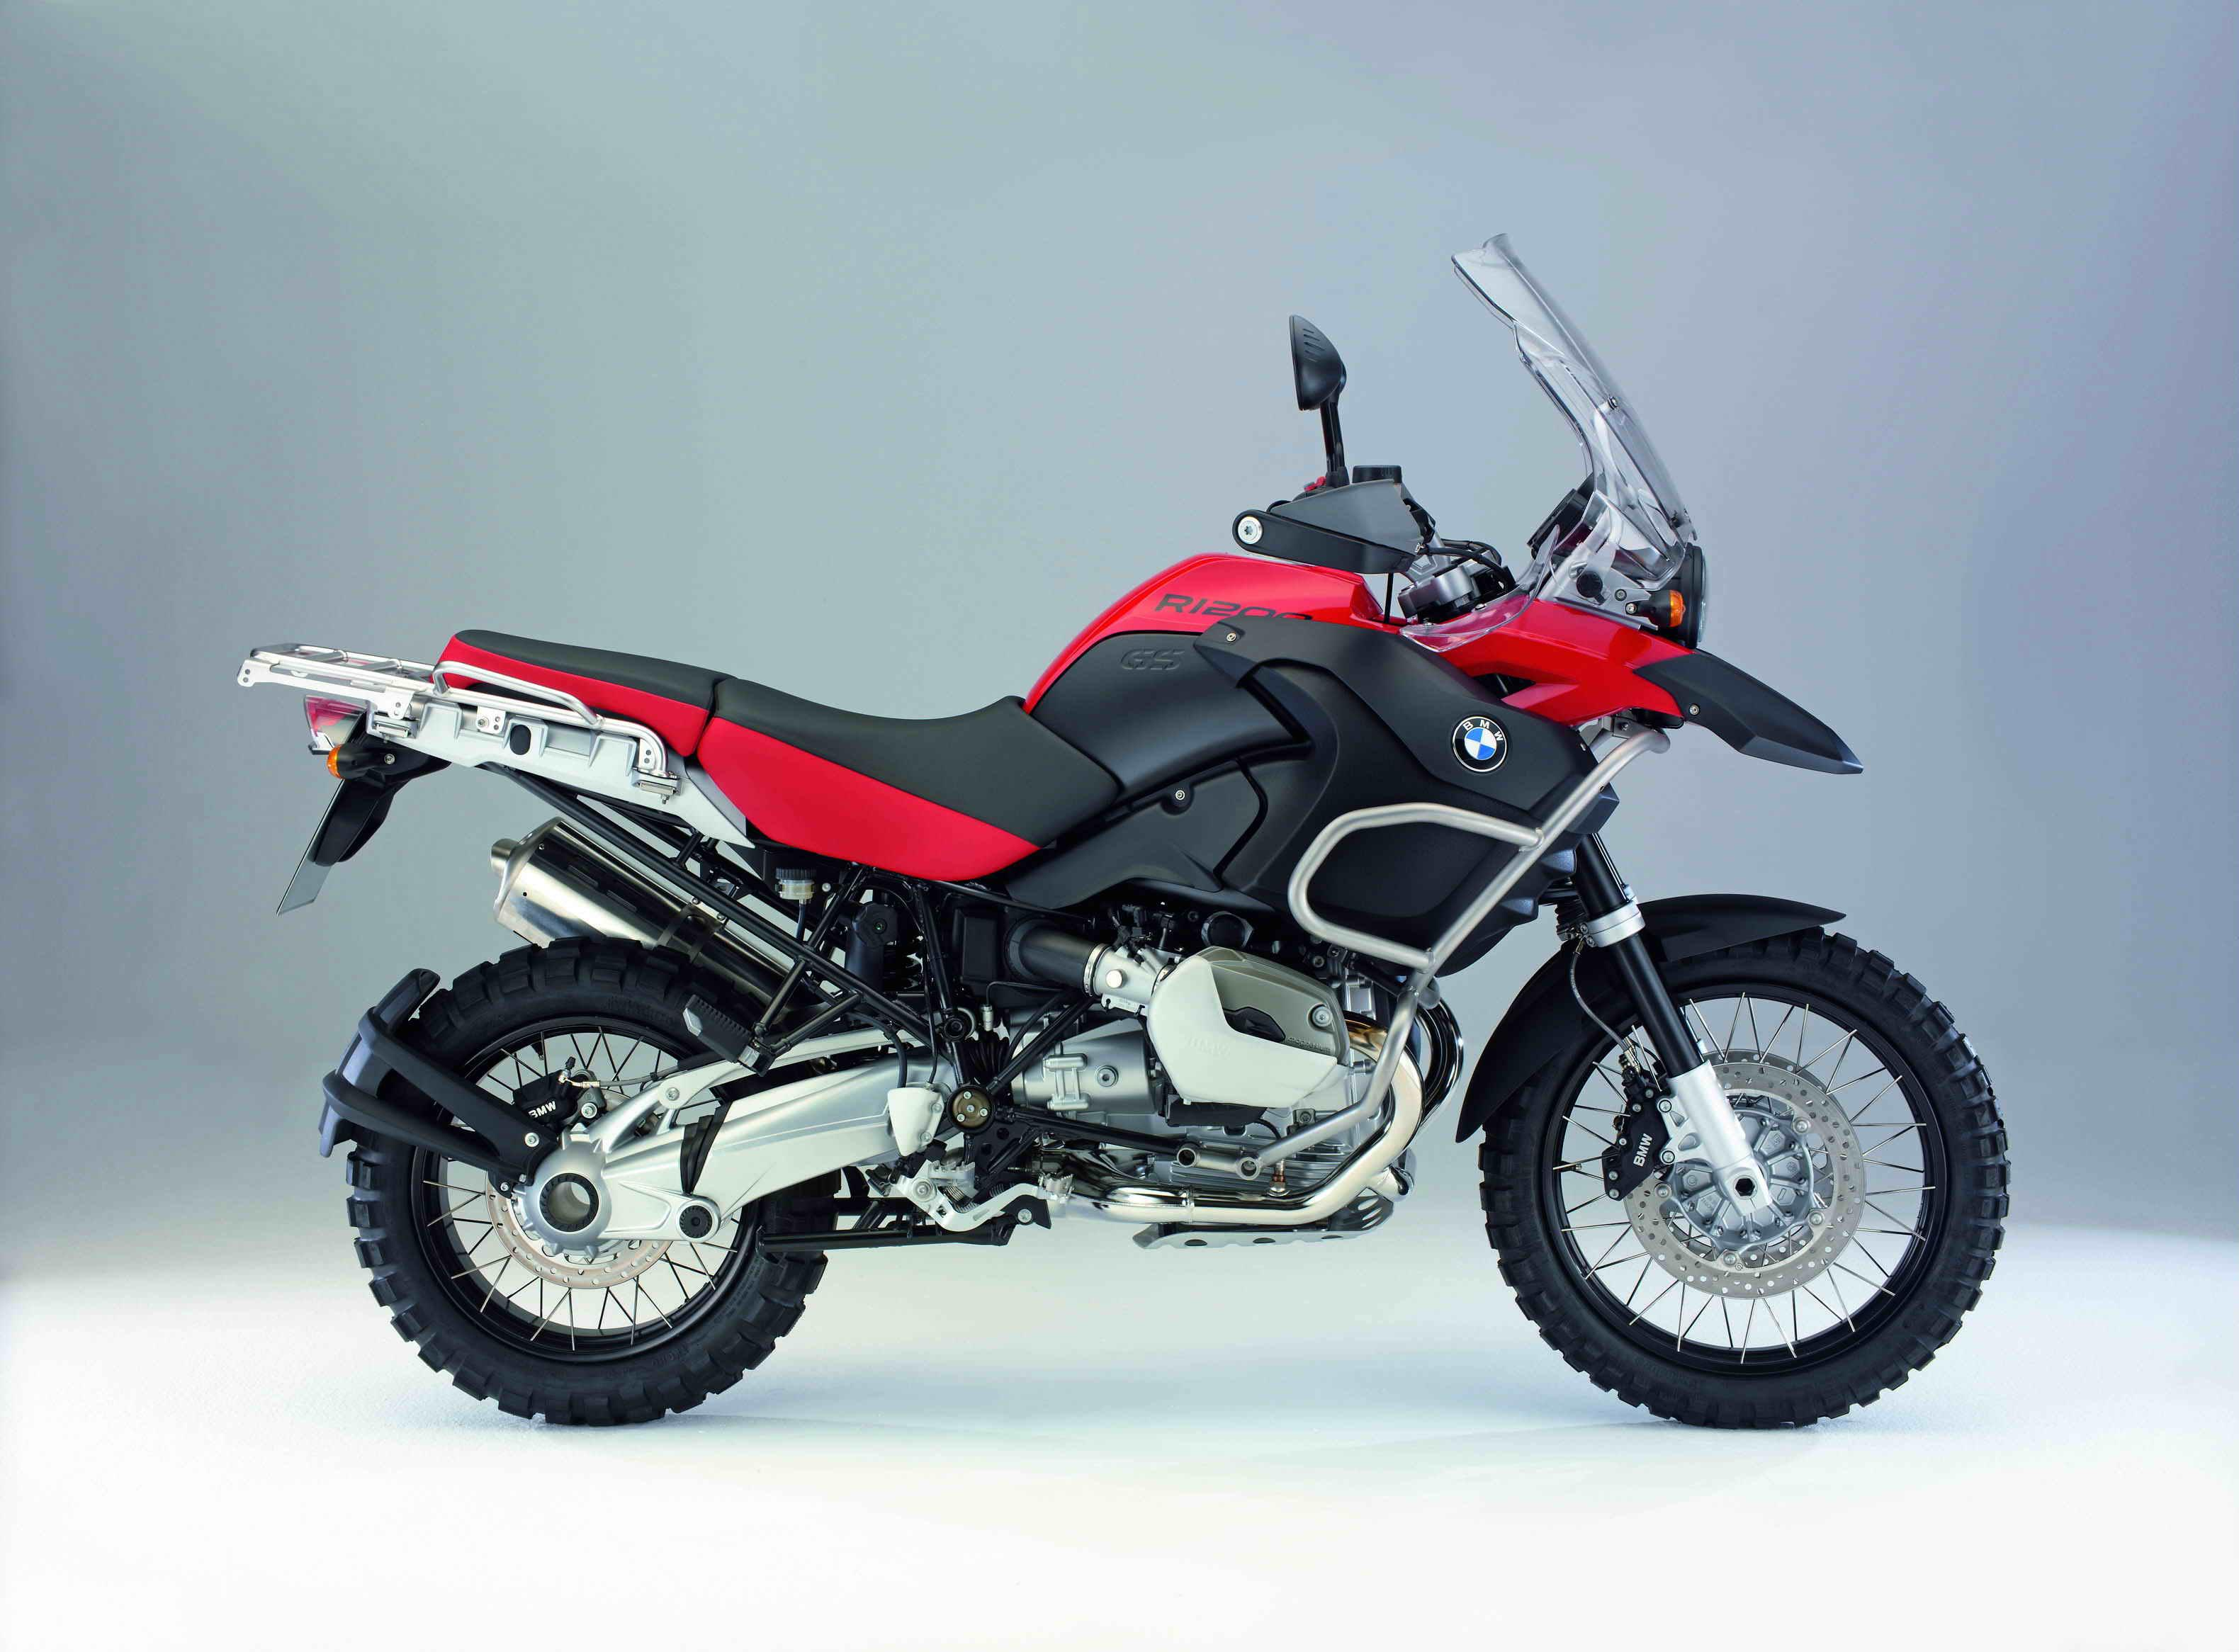 2008 bmw r 1200 gs adventure gallery 211981 top speed. Black Bedroom Furniture Sets. Home Design Ideas